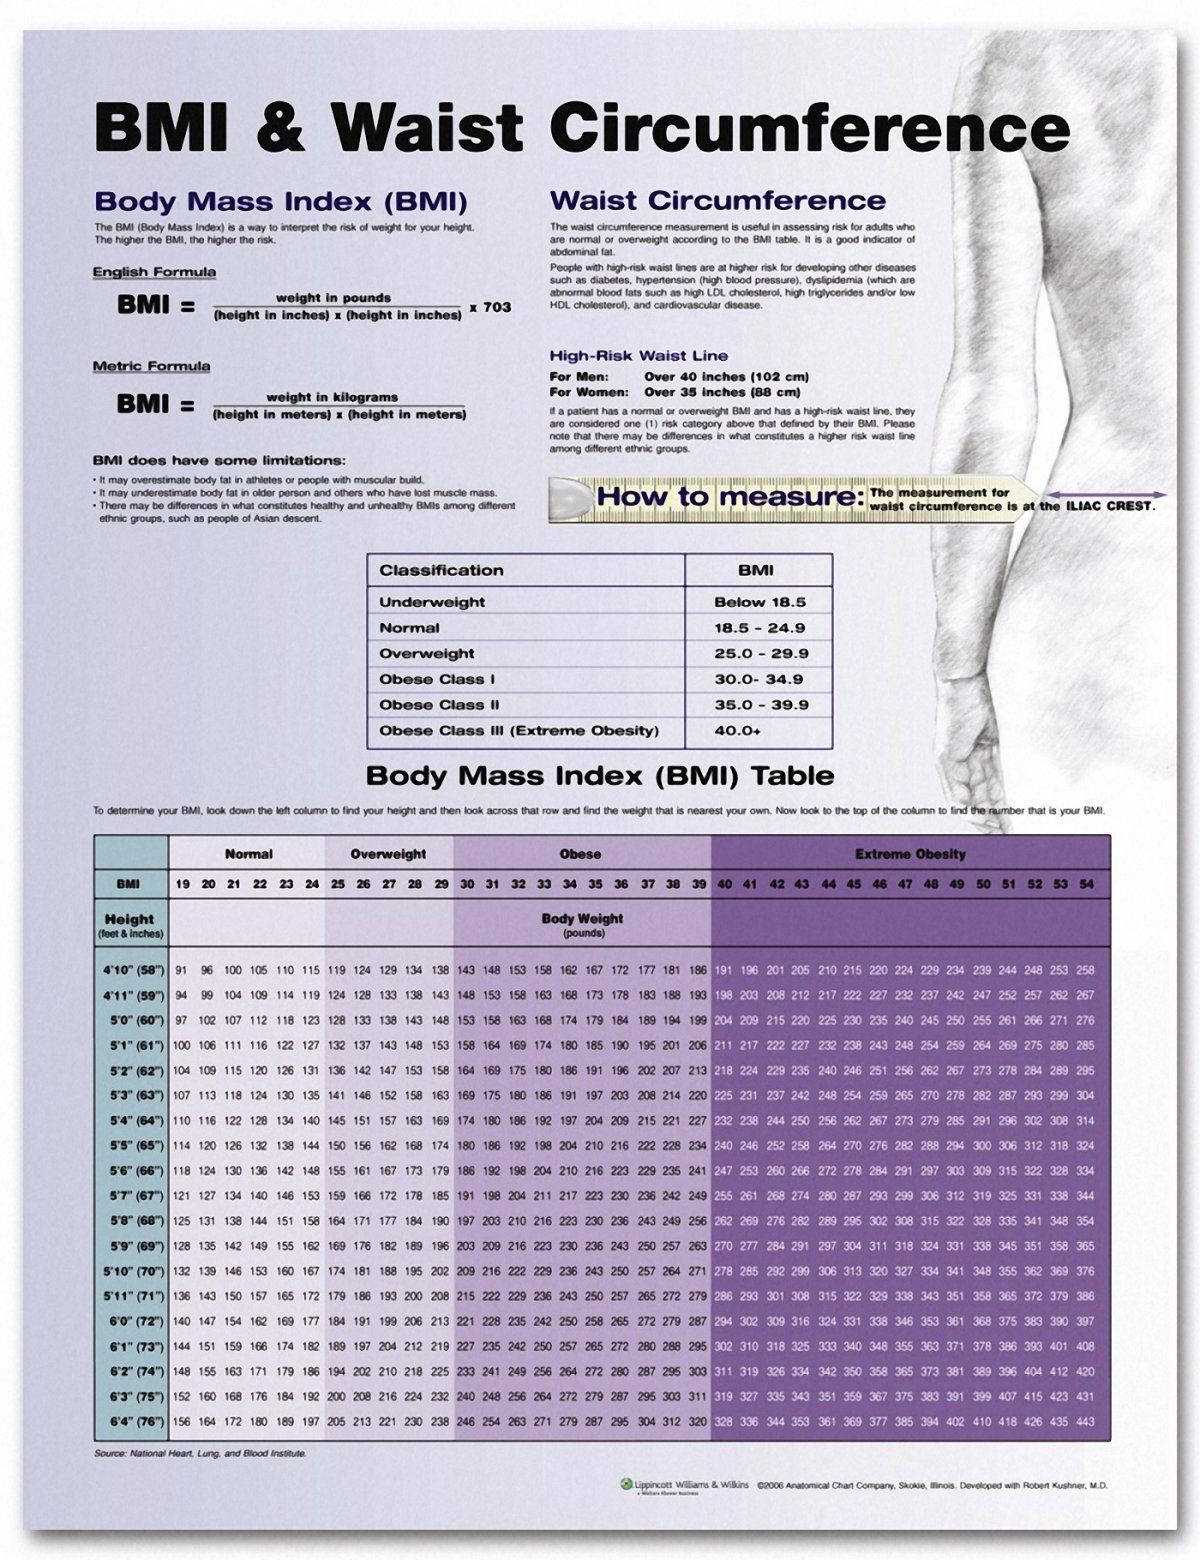 BMI And Waist Circumference Chart | Health & Fitness that I love ...